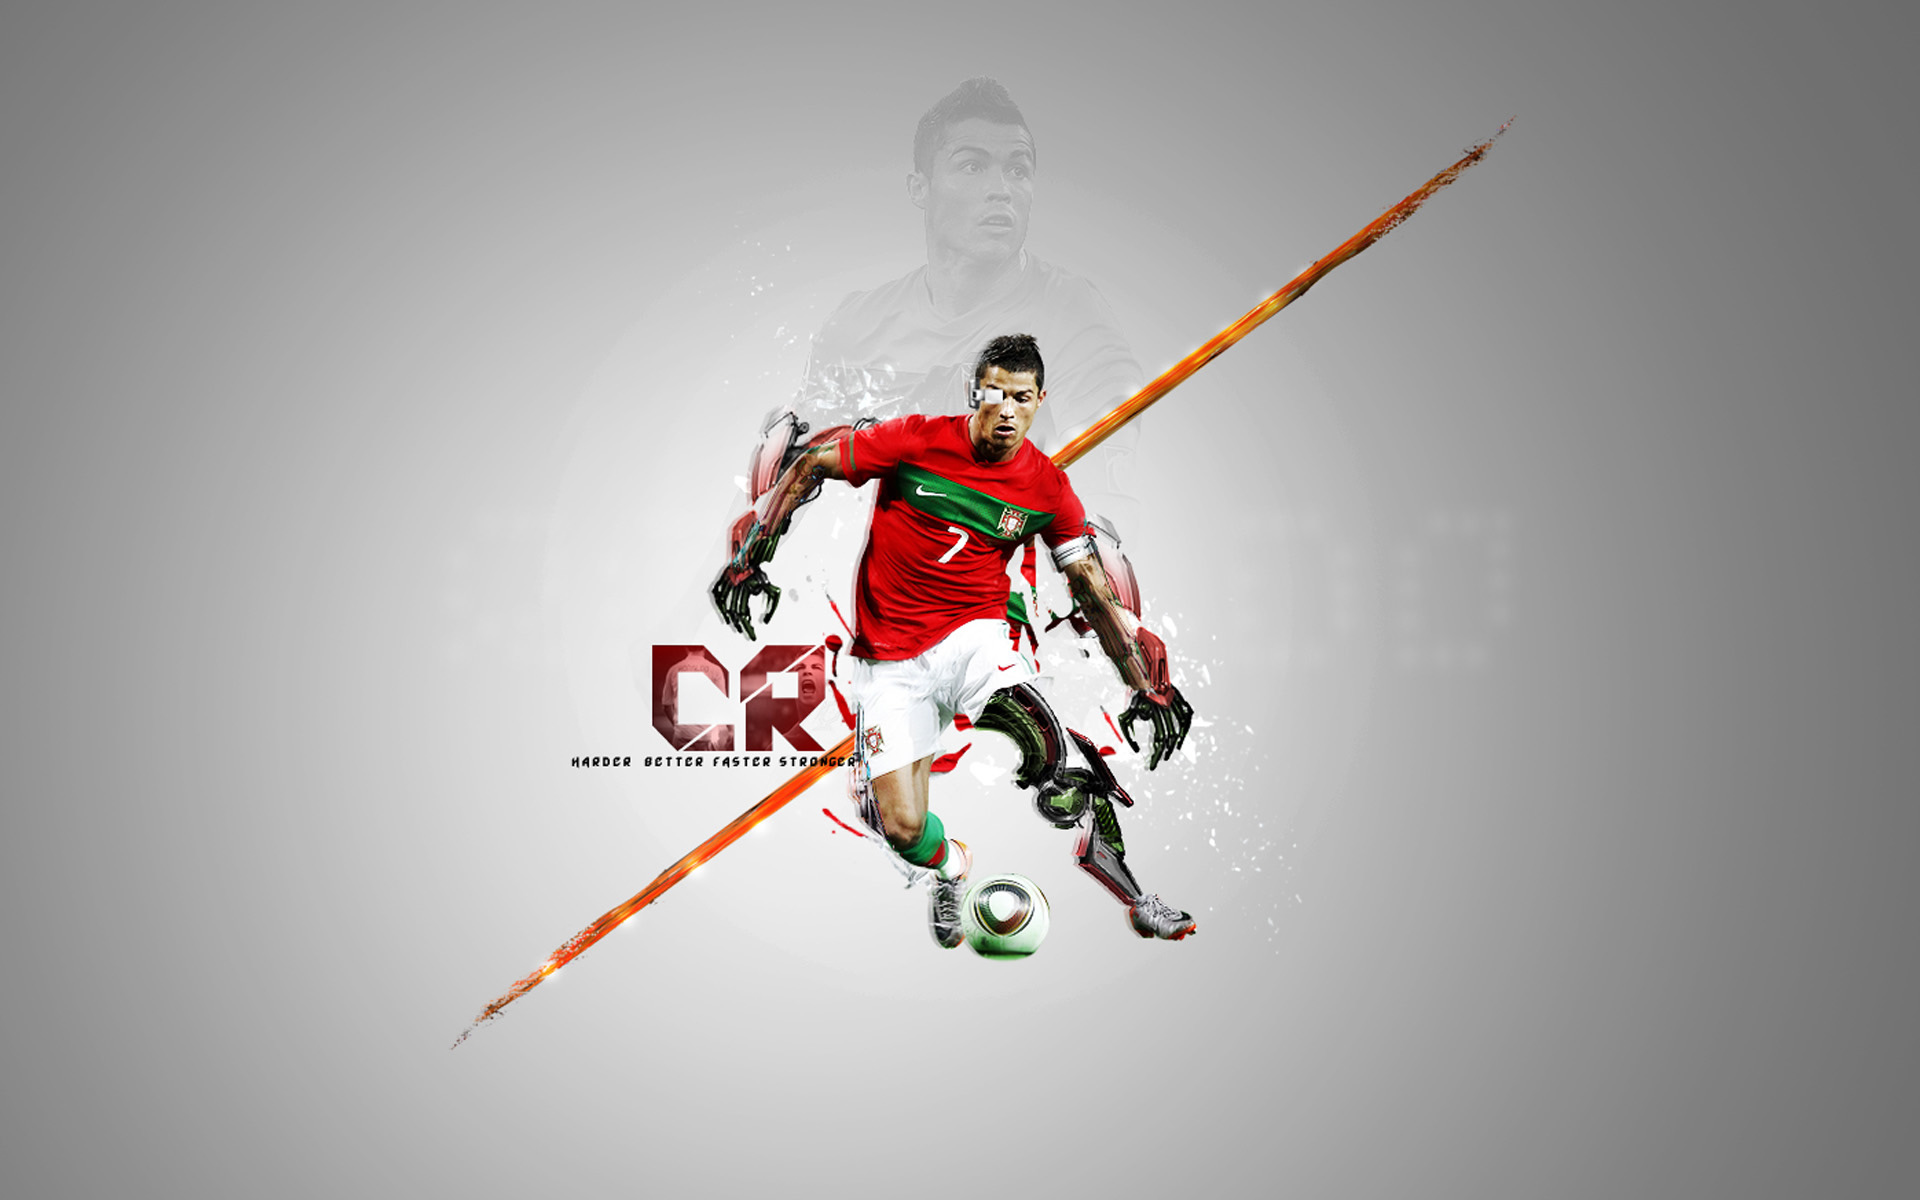 CR7 harder better faster stronger wallpaper